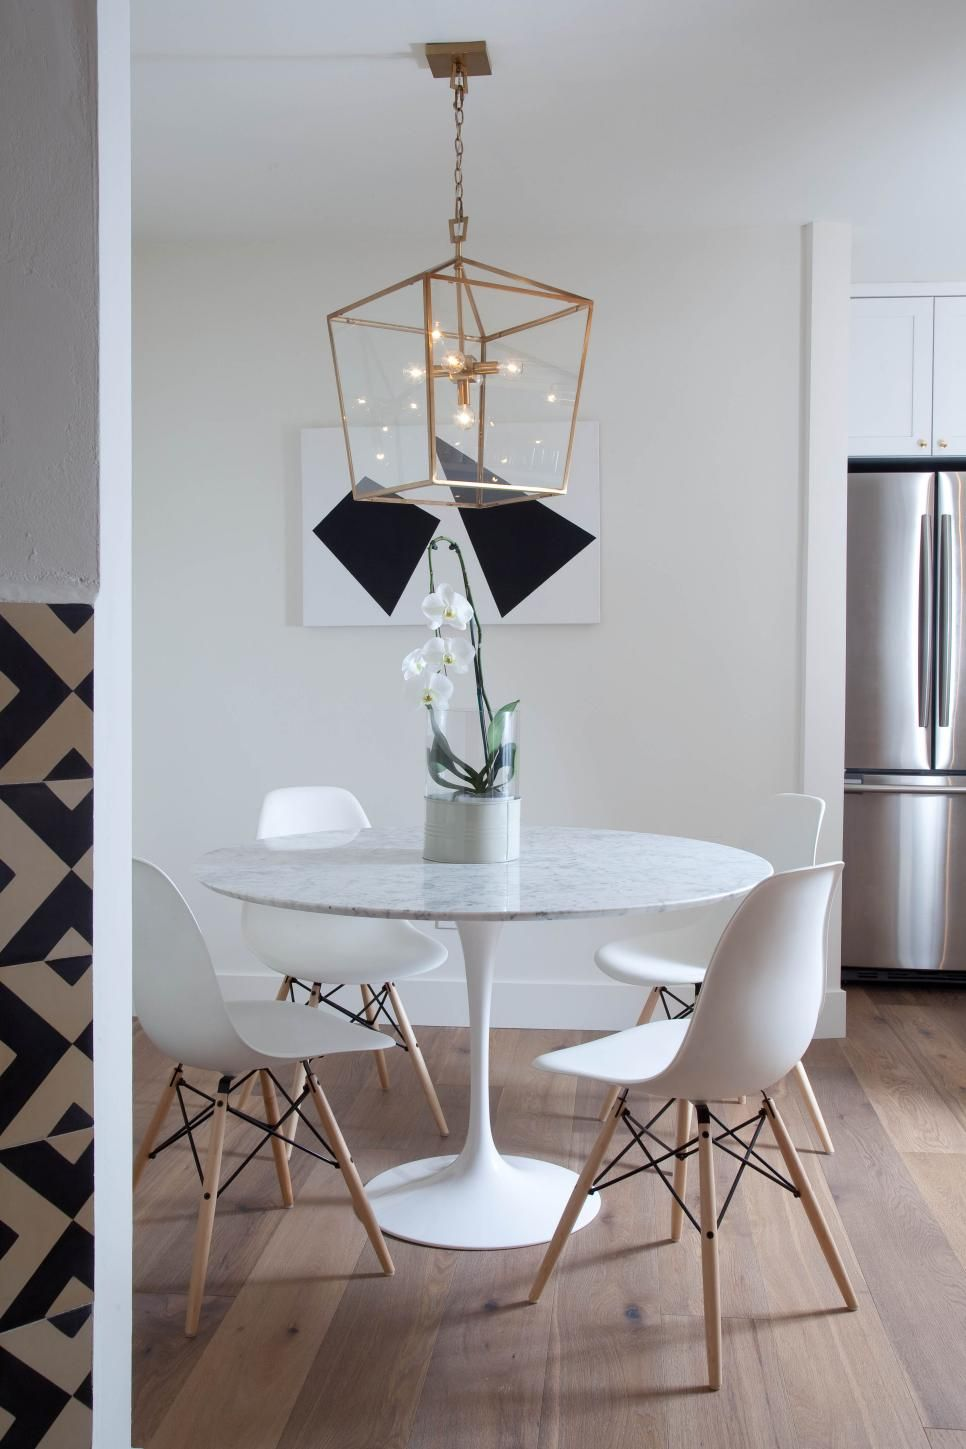 White Eamesstyle dining chairs surround the contemporary